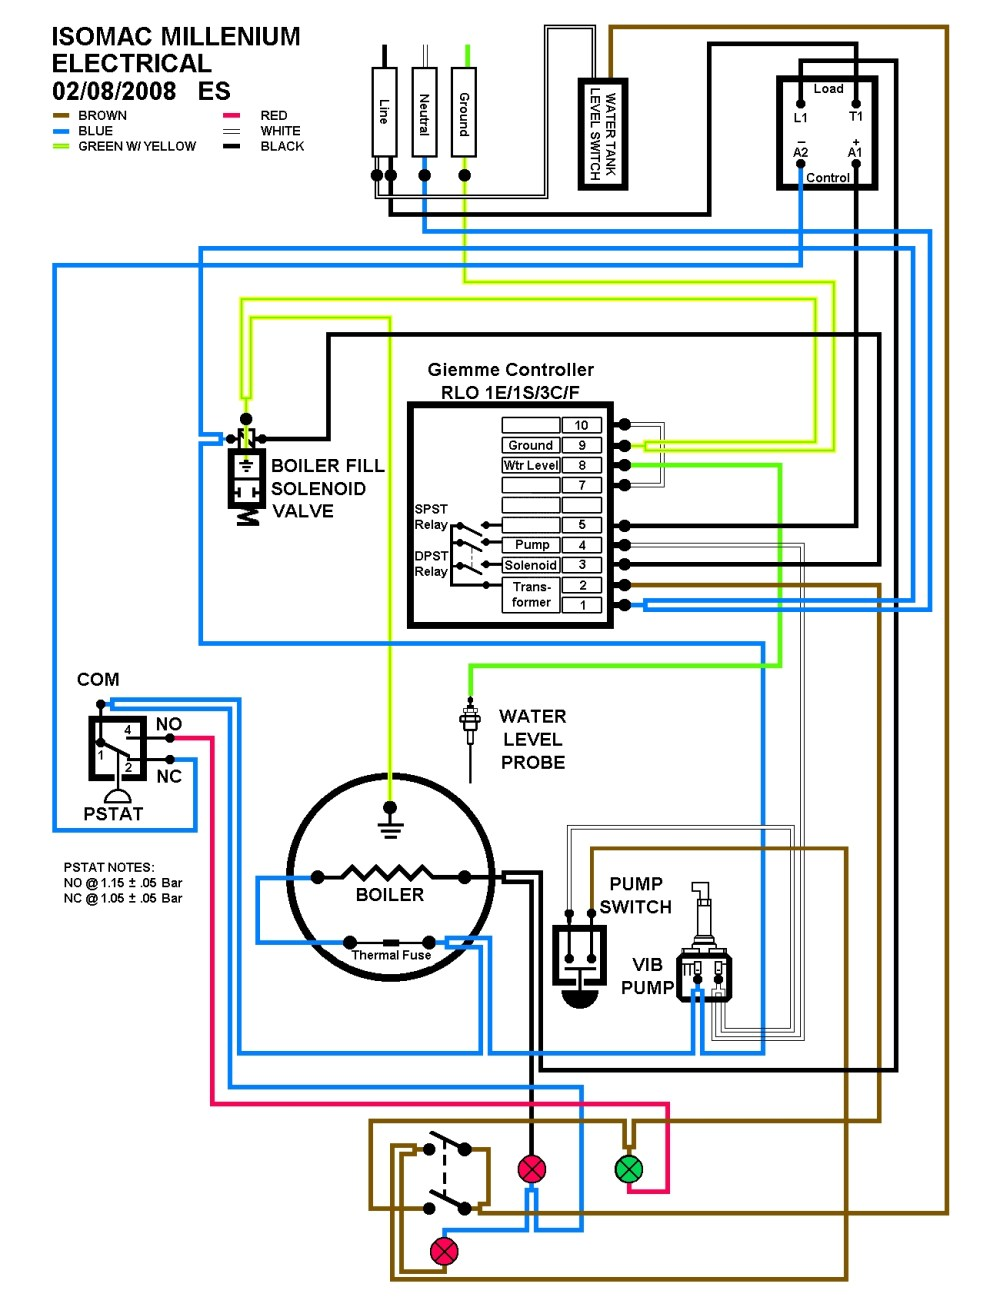 medium resolution of eric s isomac wiring diagram